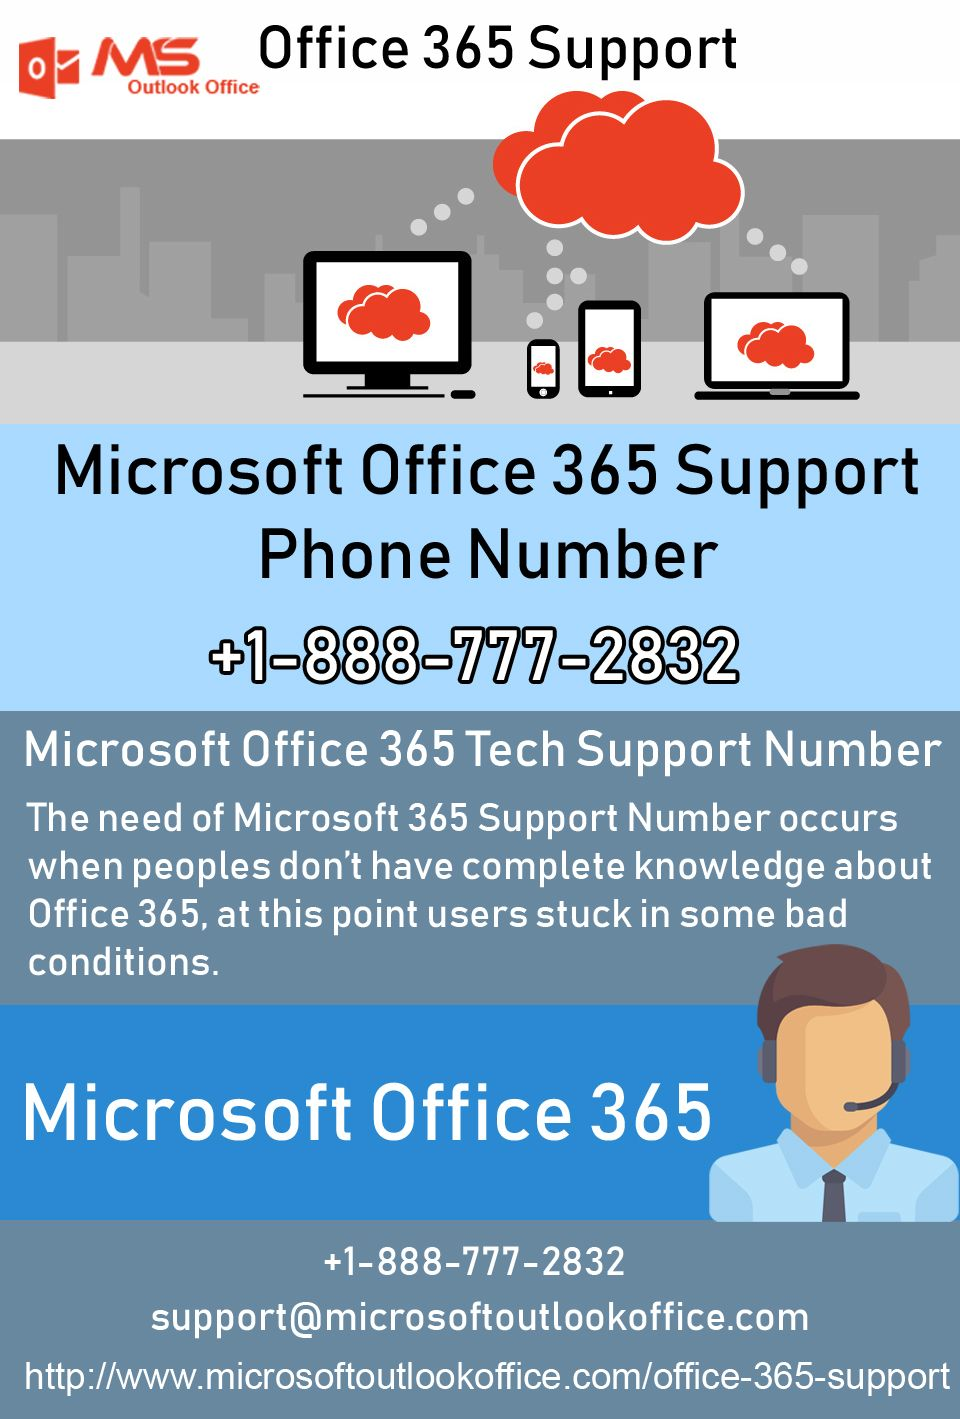 Are you messed up with negative office 365 result and